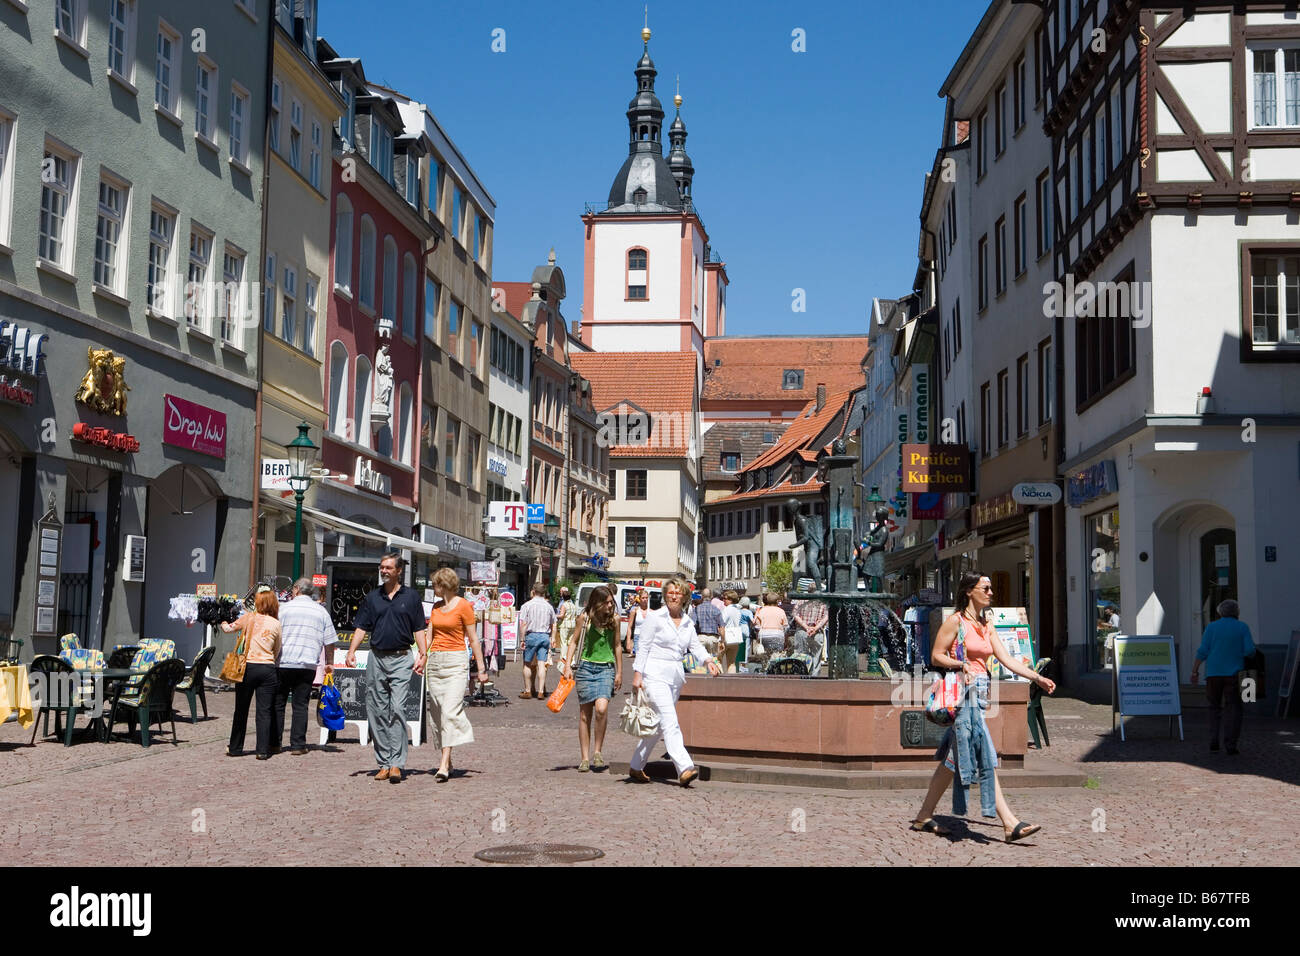 Pedestrian Mall In Downtown Fulda Fulda Hesse Germany Stock Photo Alamy